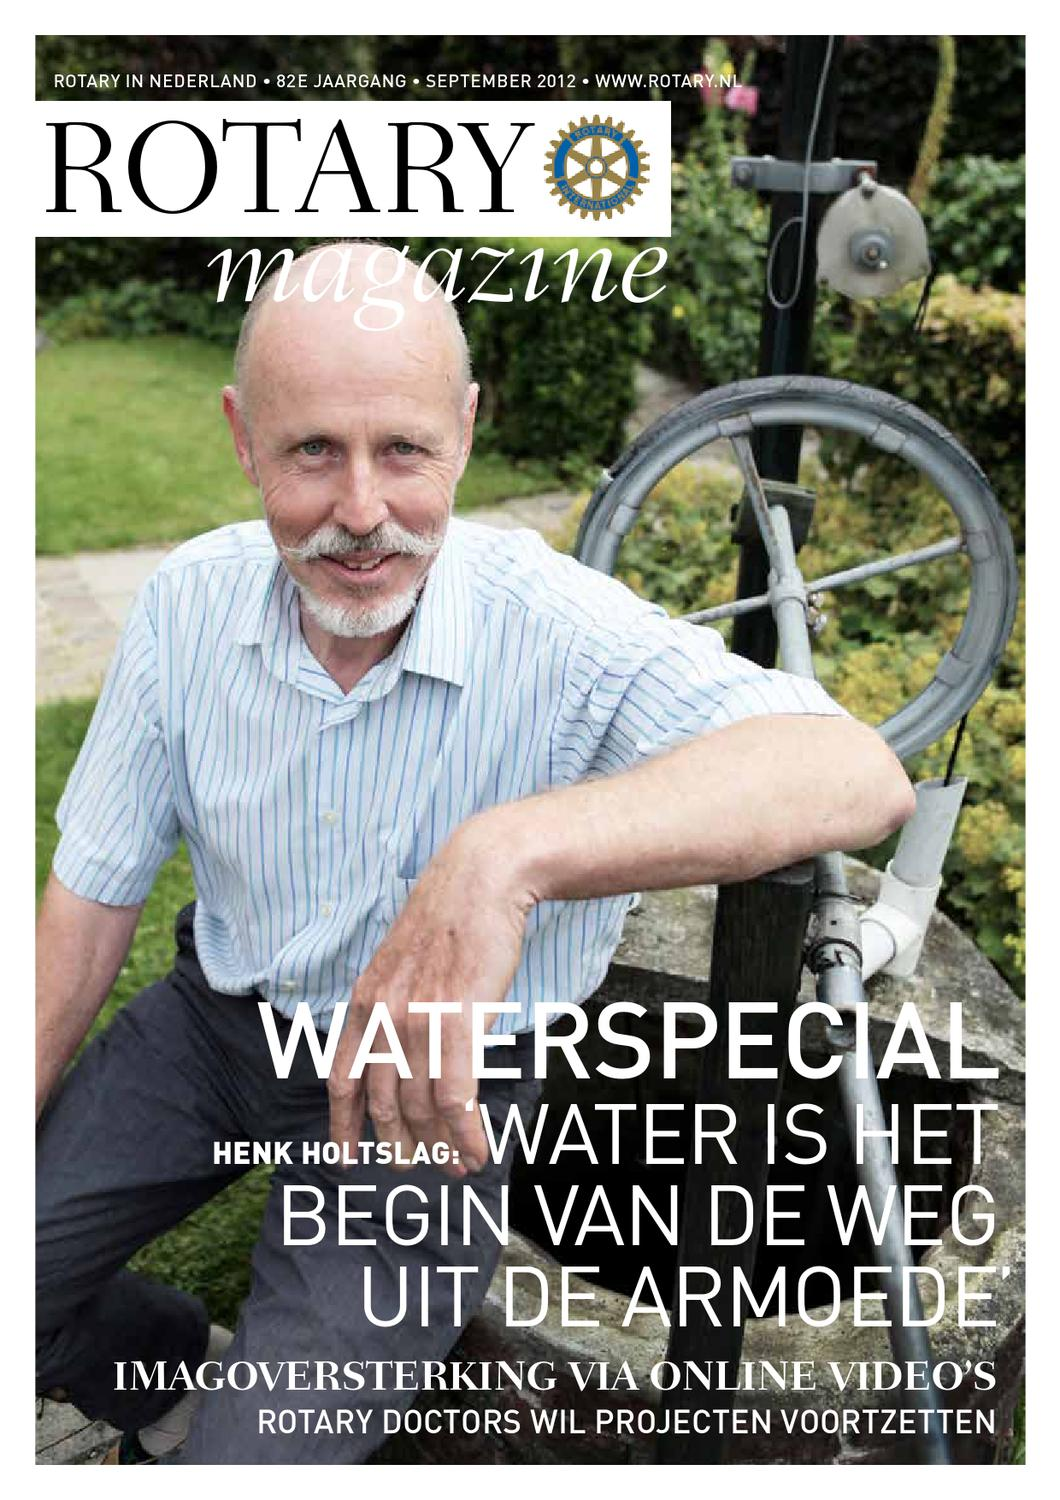 Rotary Magazine april 2012 by Rotary in Nederland - issuu